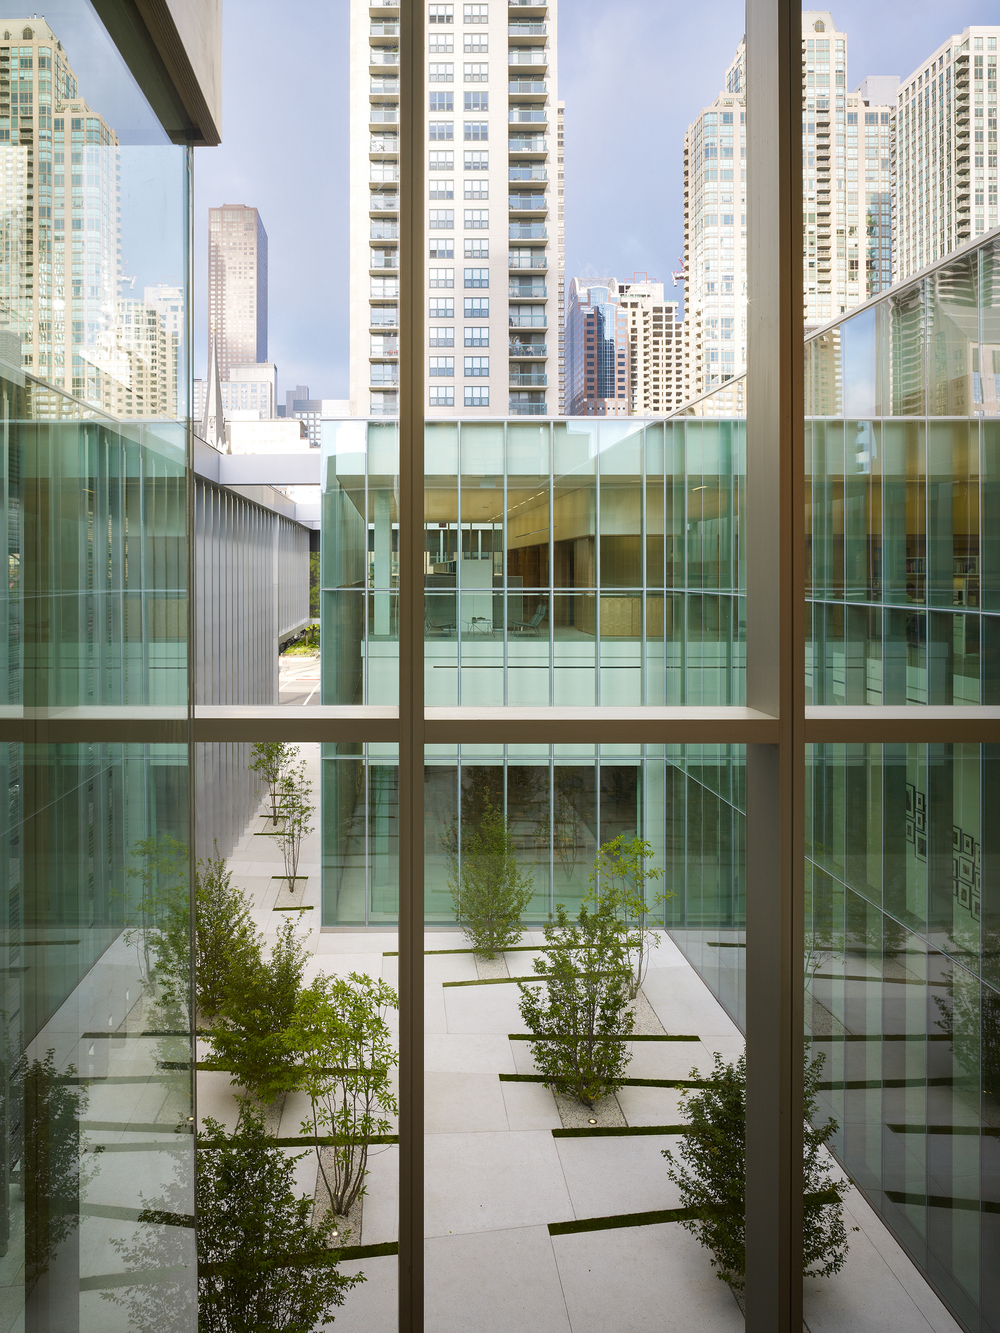 Poetry Foundation  John Ronan Architects  Chicago, IL     Return to Projects